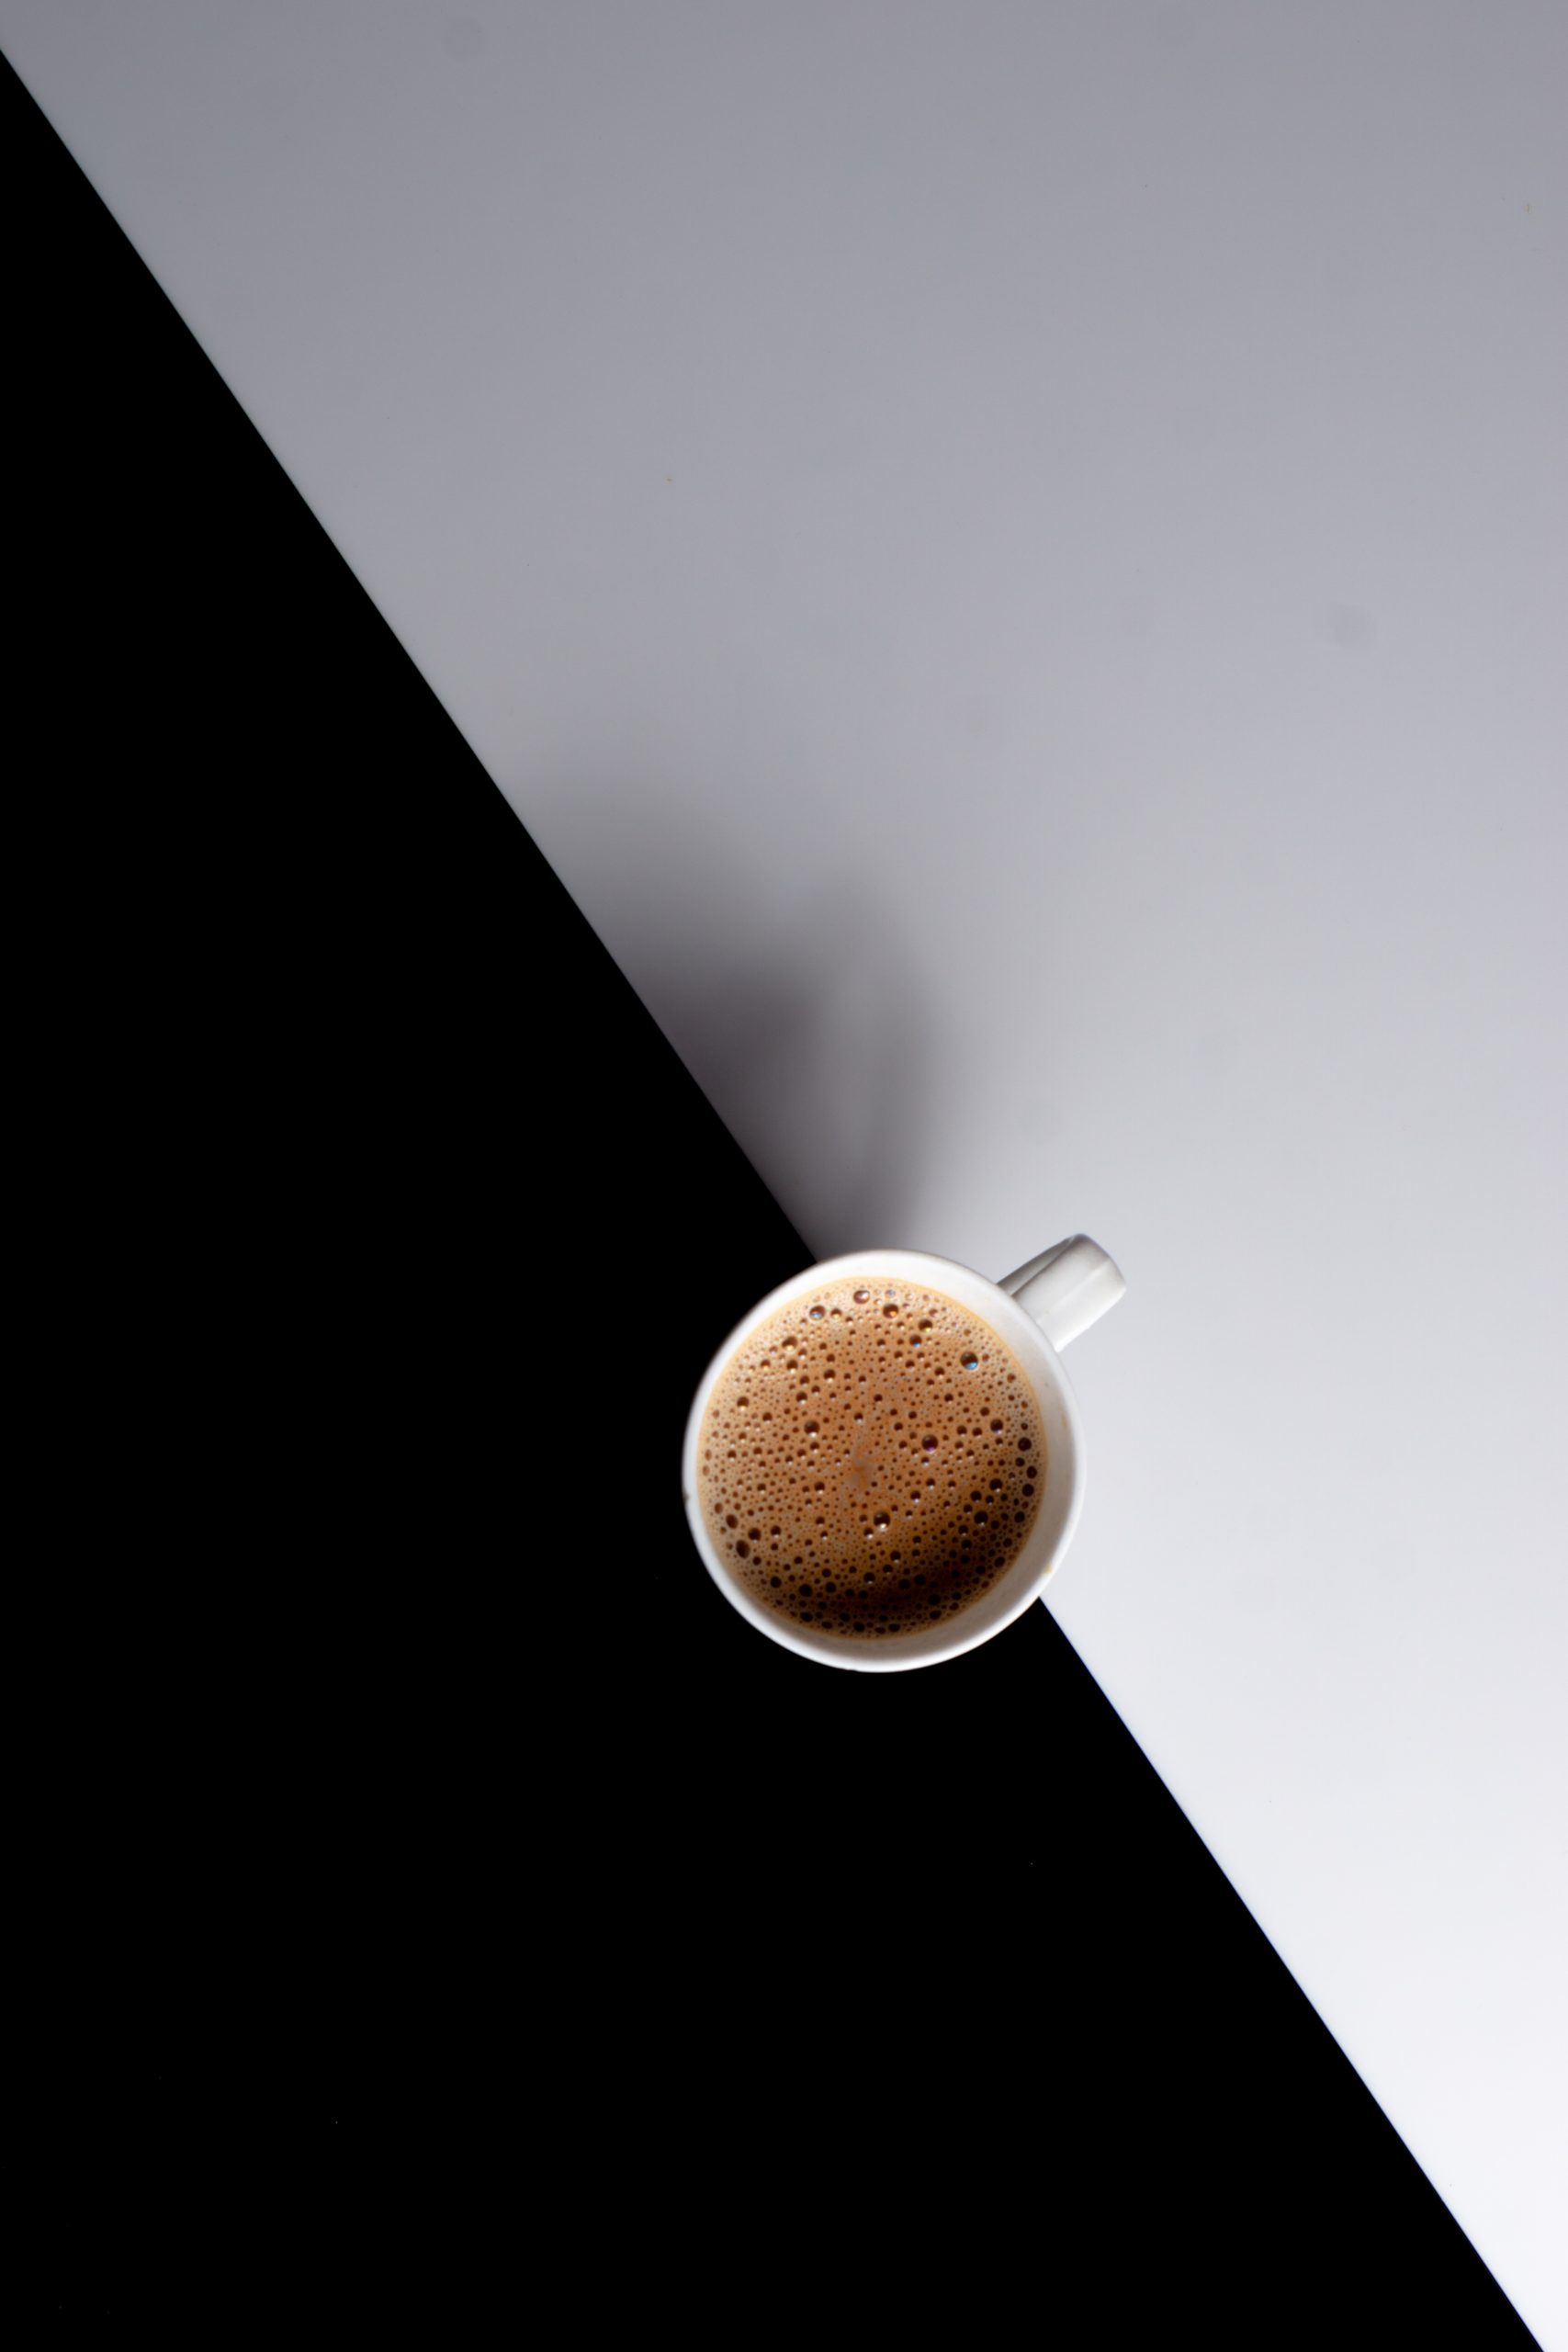 A cup of tea on a black and white background.